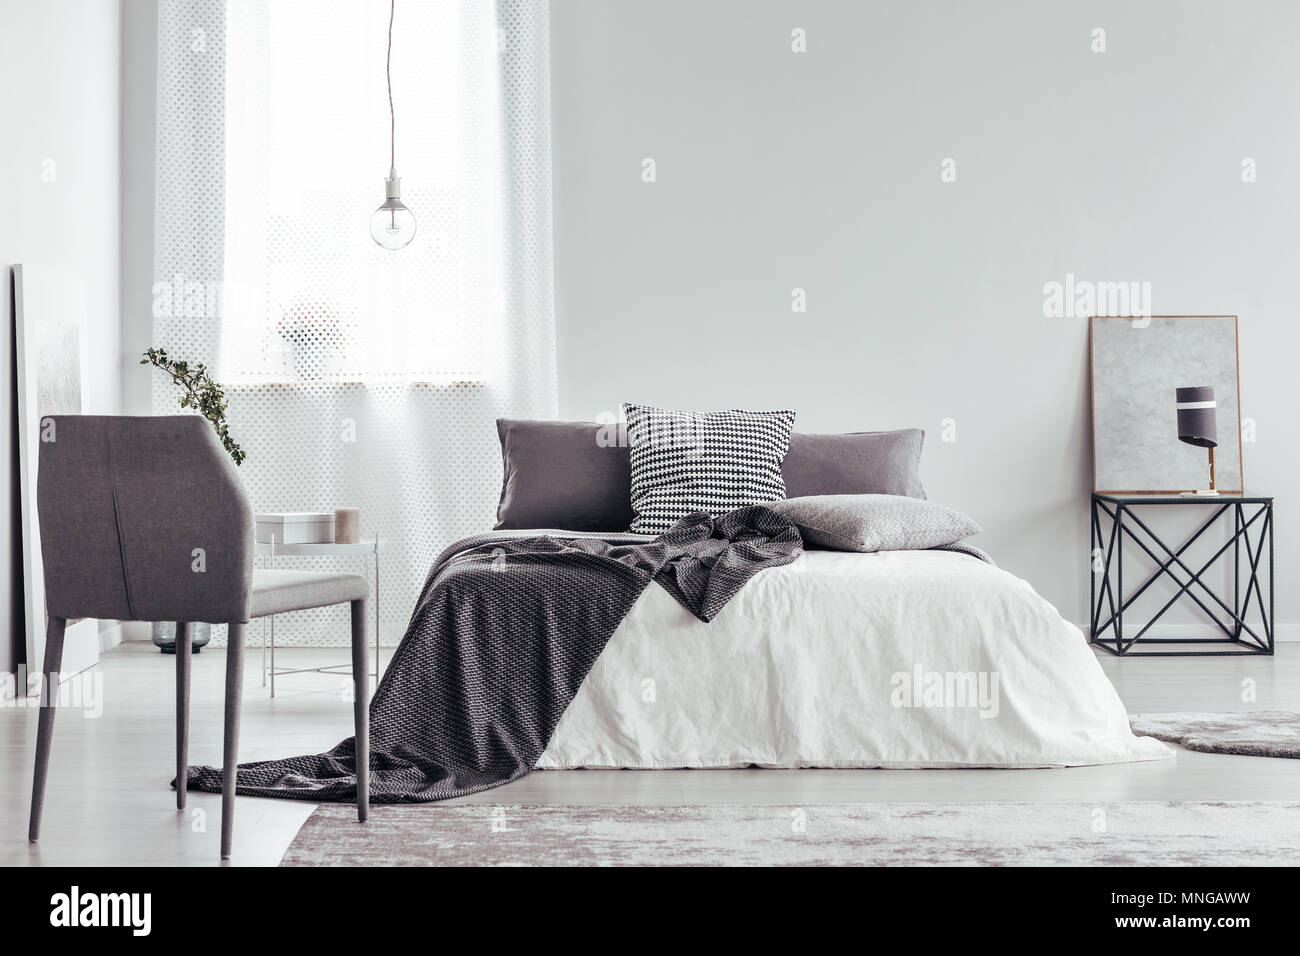 bedroom chair with blanket buy dining covers australia grey and bed patterned cushions in white interior lamp on table against a wall copy space